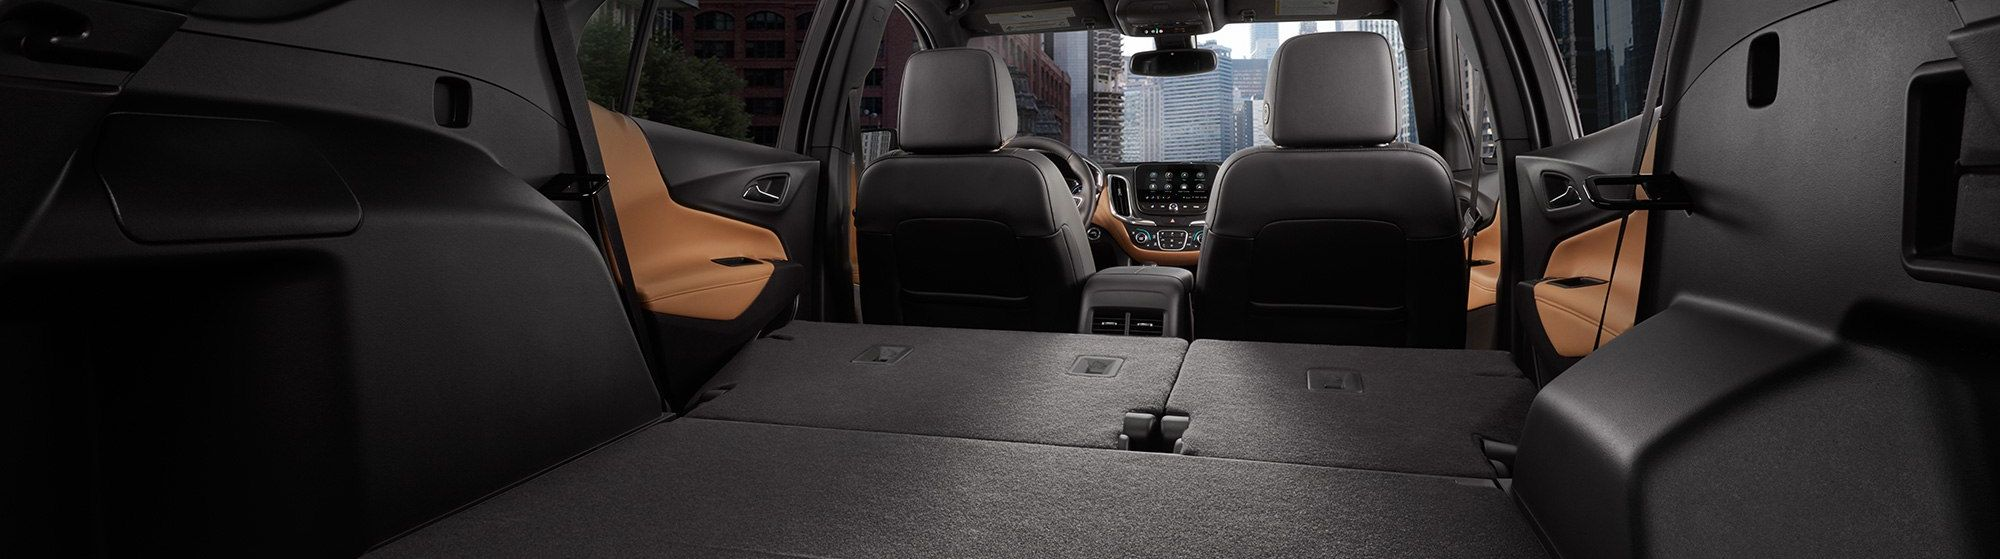 You'll Love the Equinox's Spacious Interior!